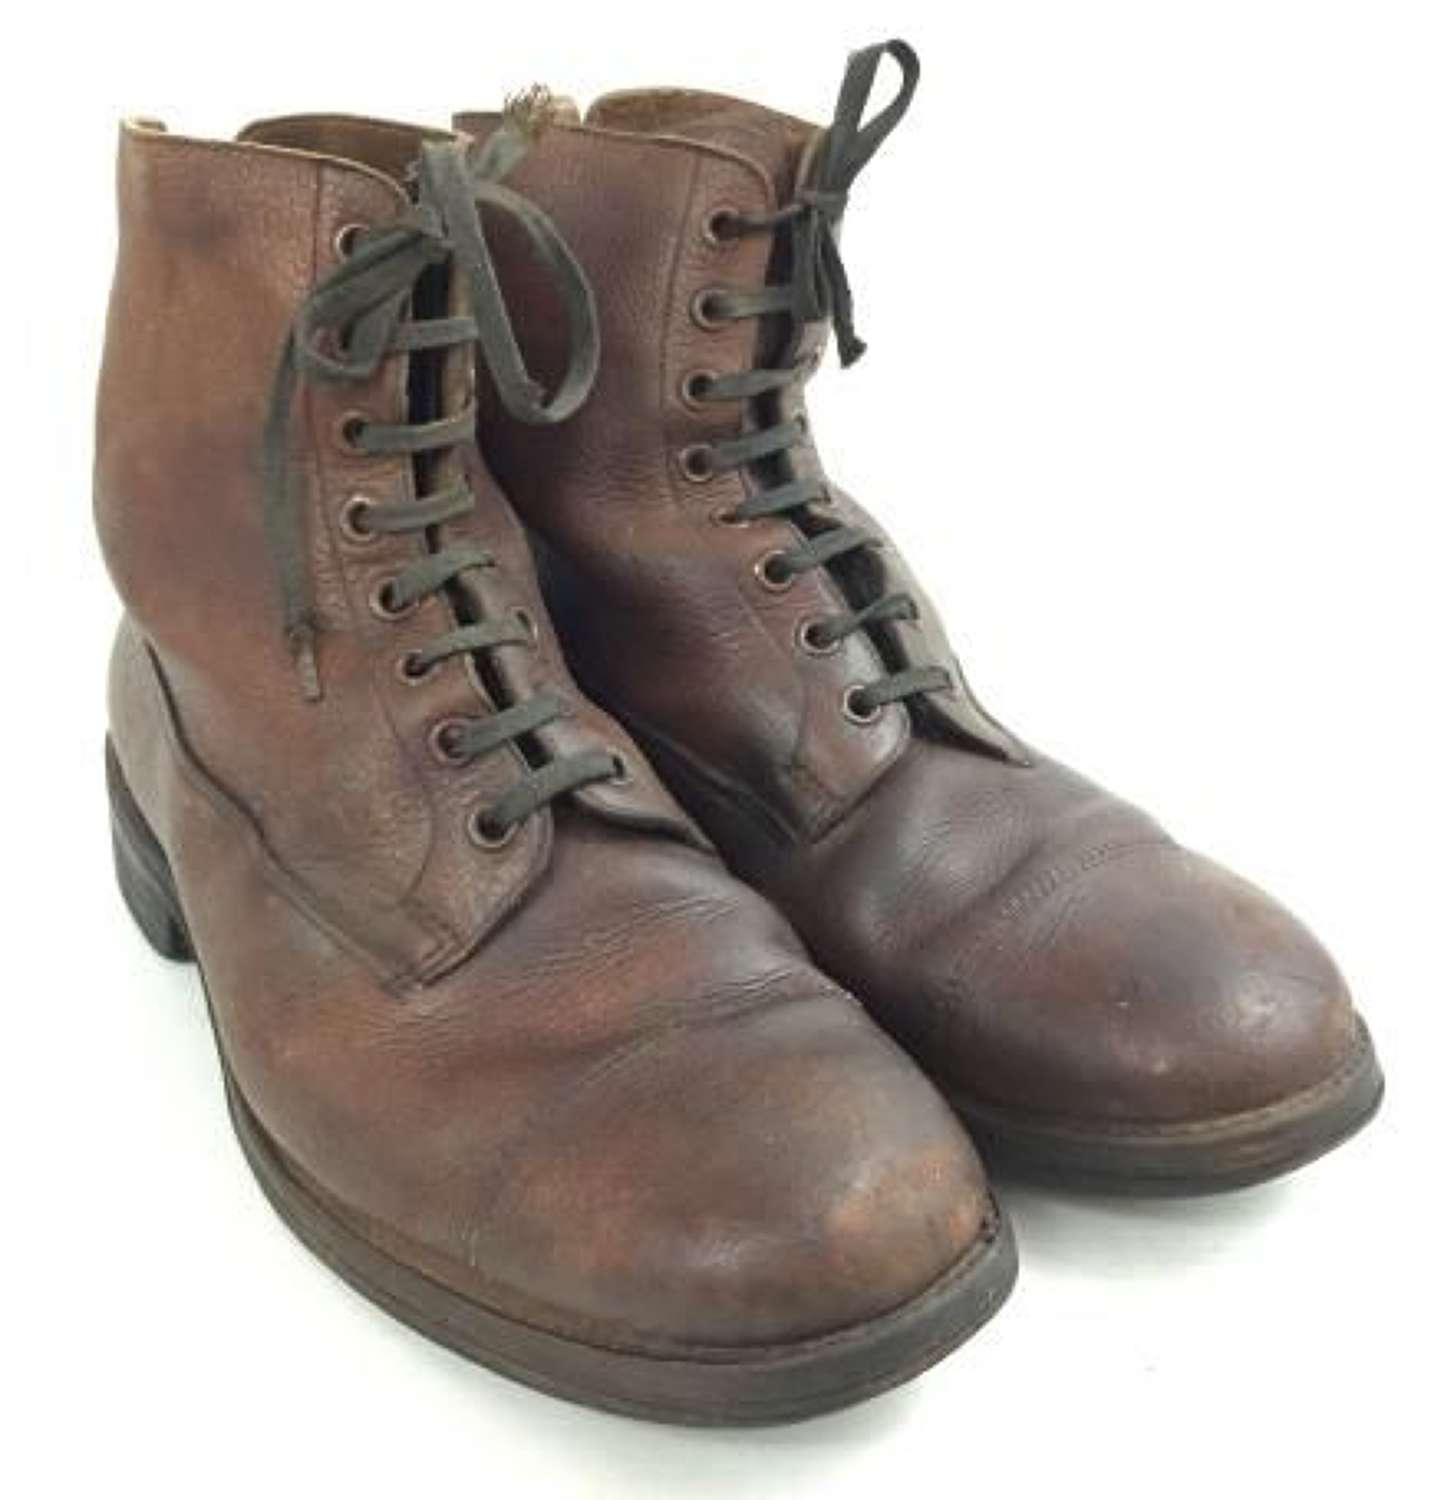 Original WW2 Brown British Army Officers Boots By 'Lotus'